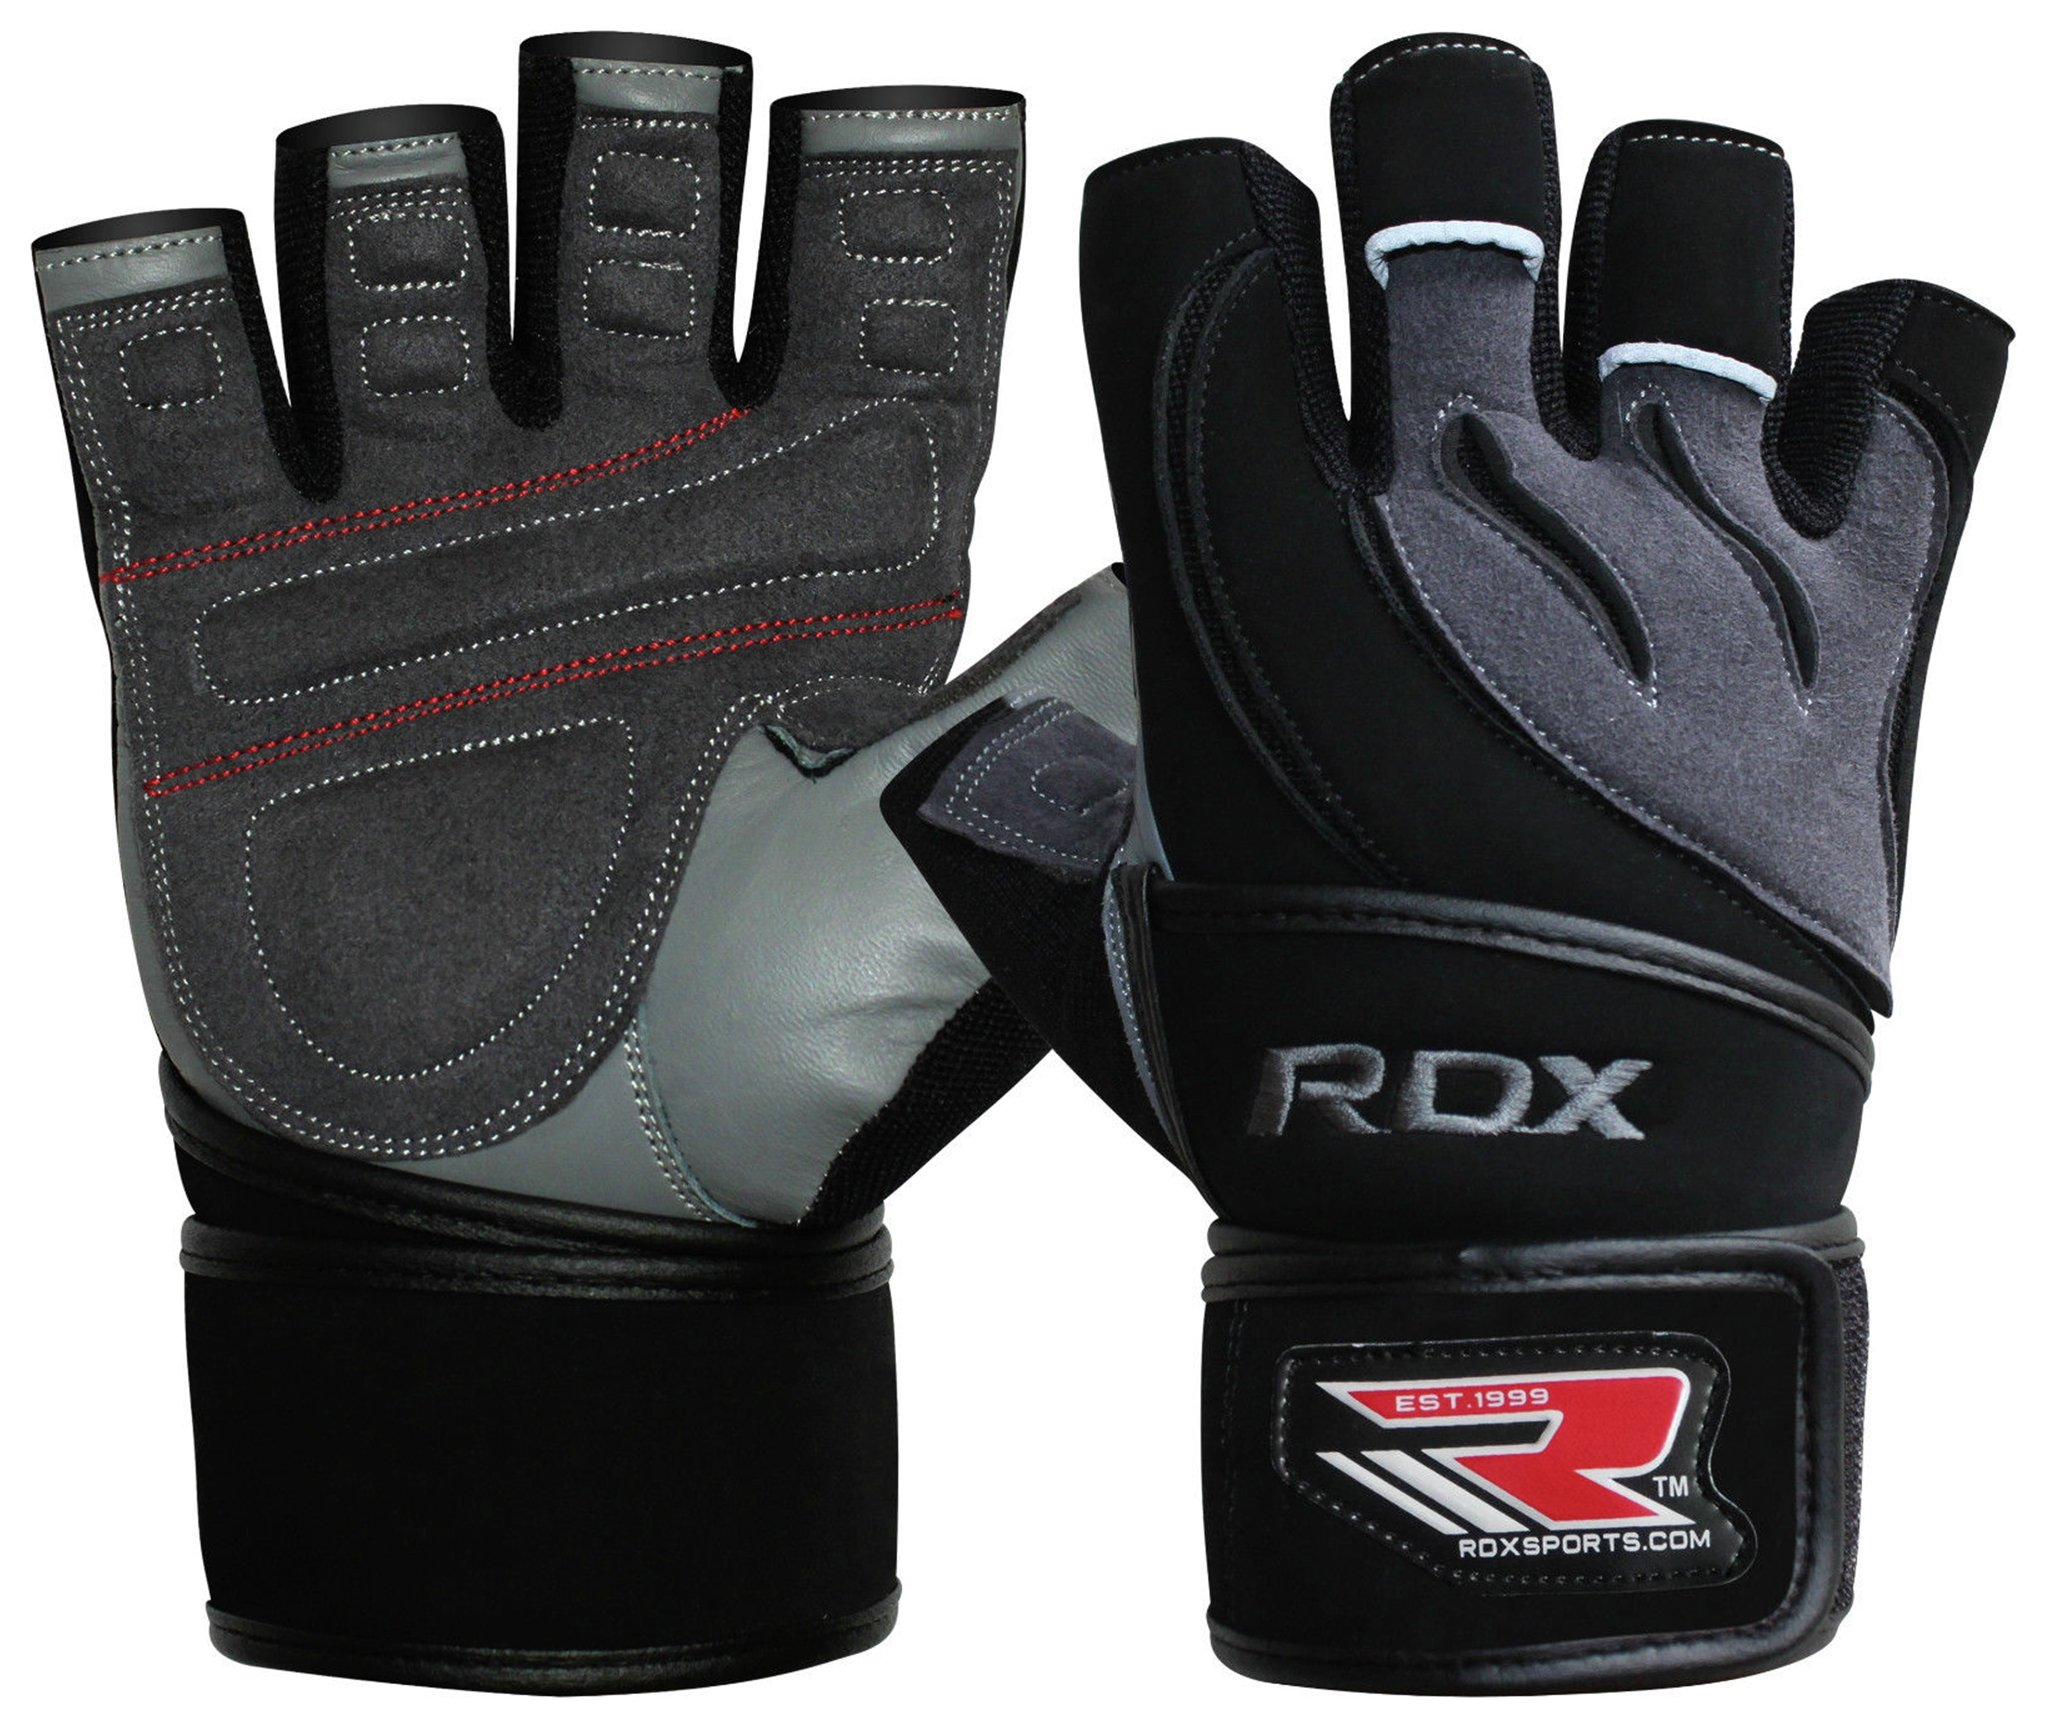 Fitness Gloves Argos: Buy Dumbbells Weights And Dumbbells At Argos.co.uk